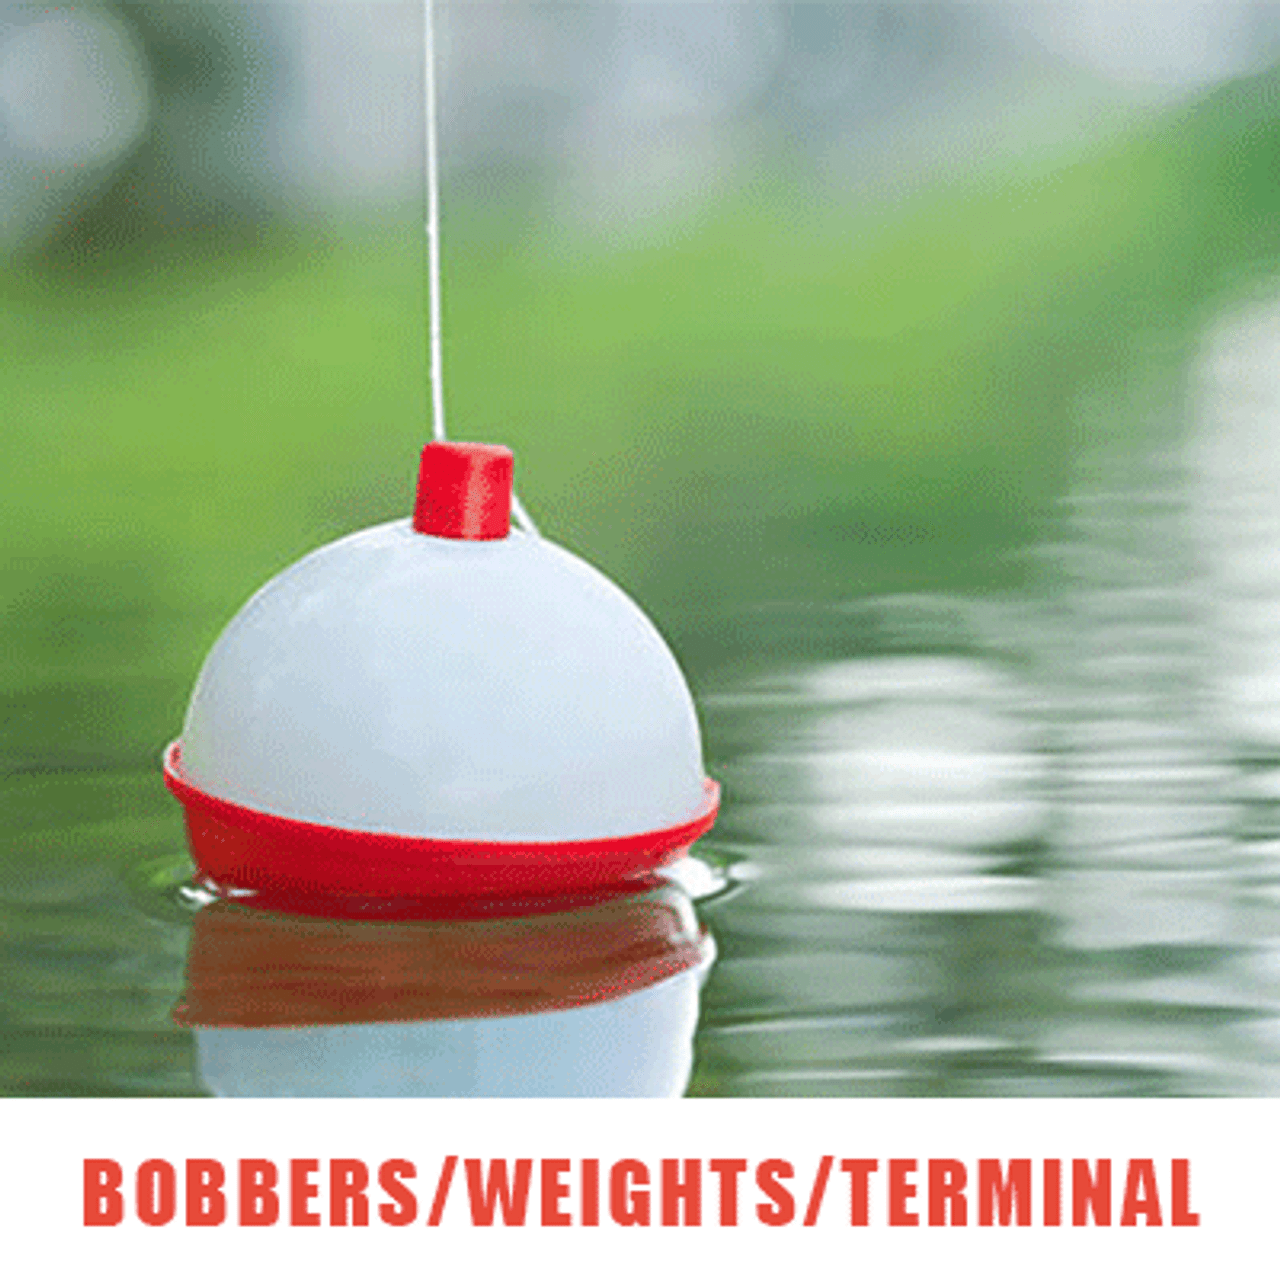 Bobbers/Weights/Terminal